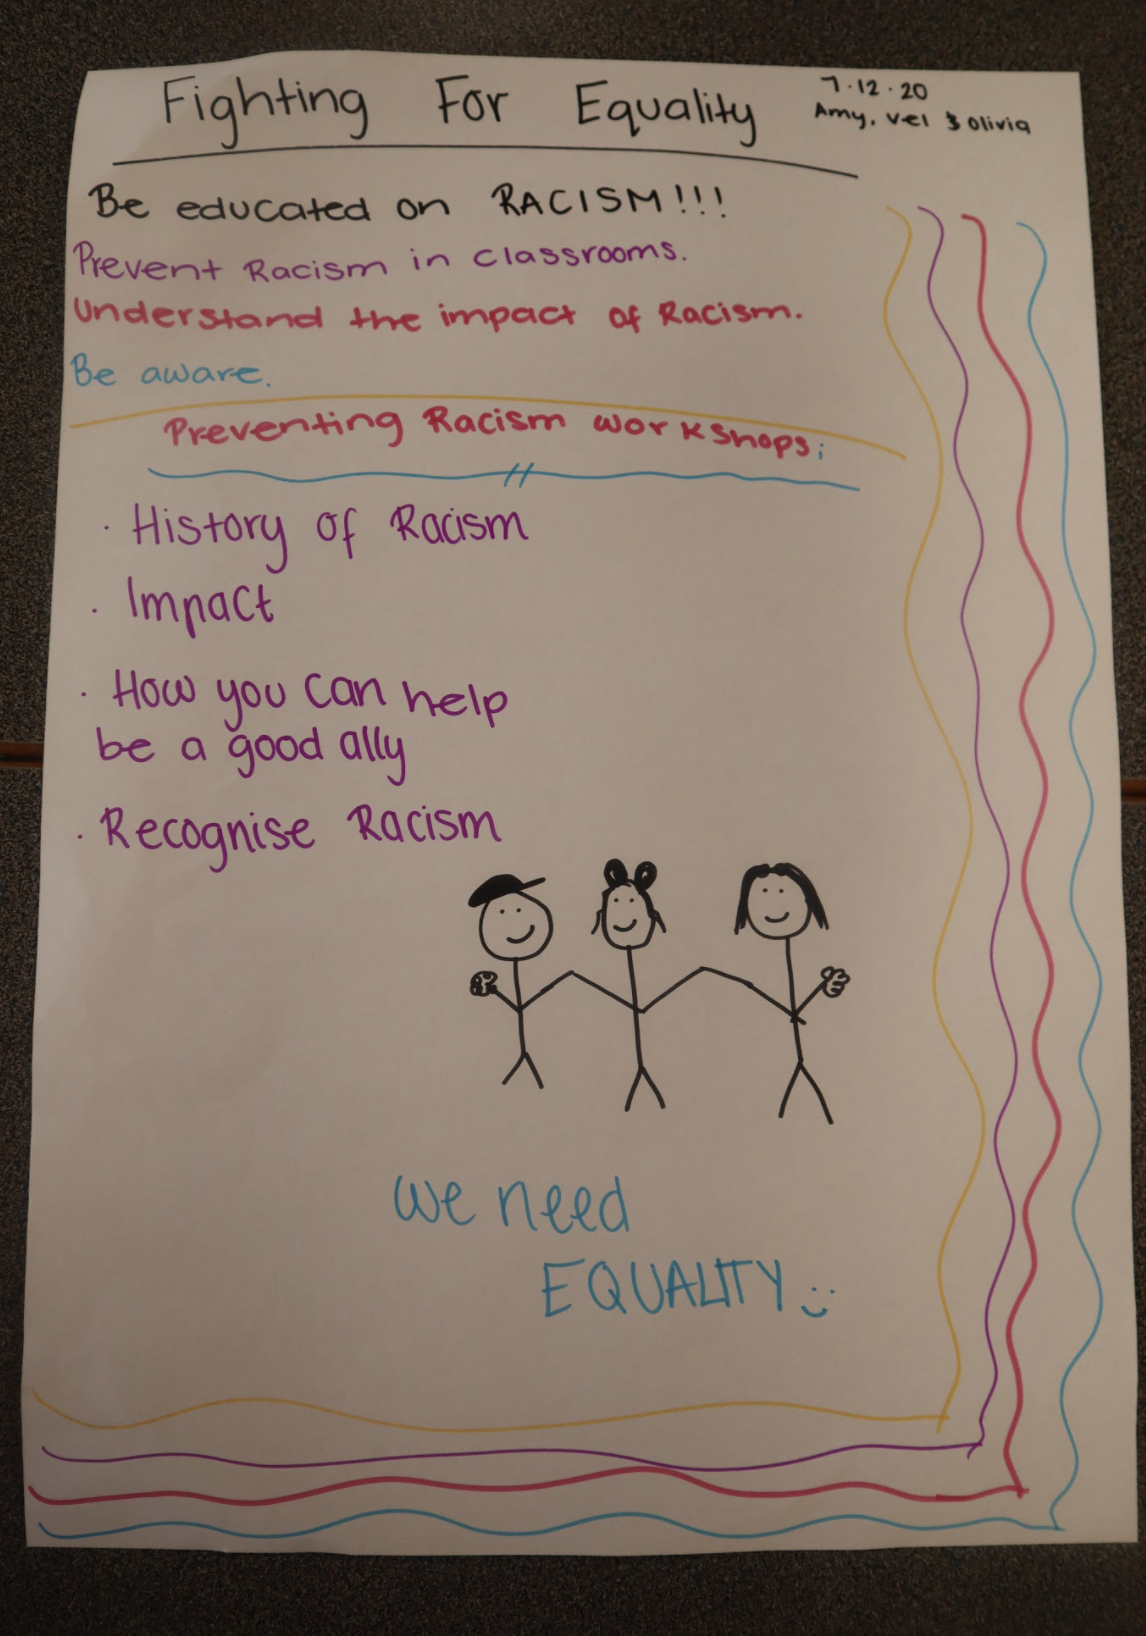 A poster detailing the contents of the racism workshop.